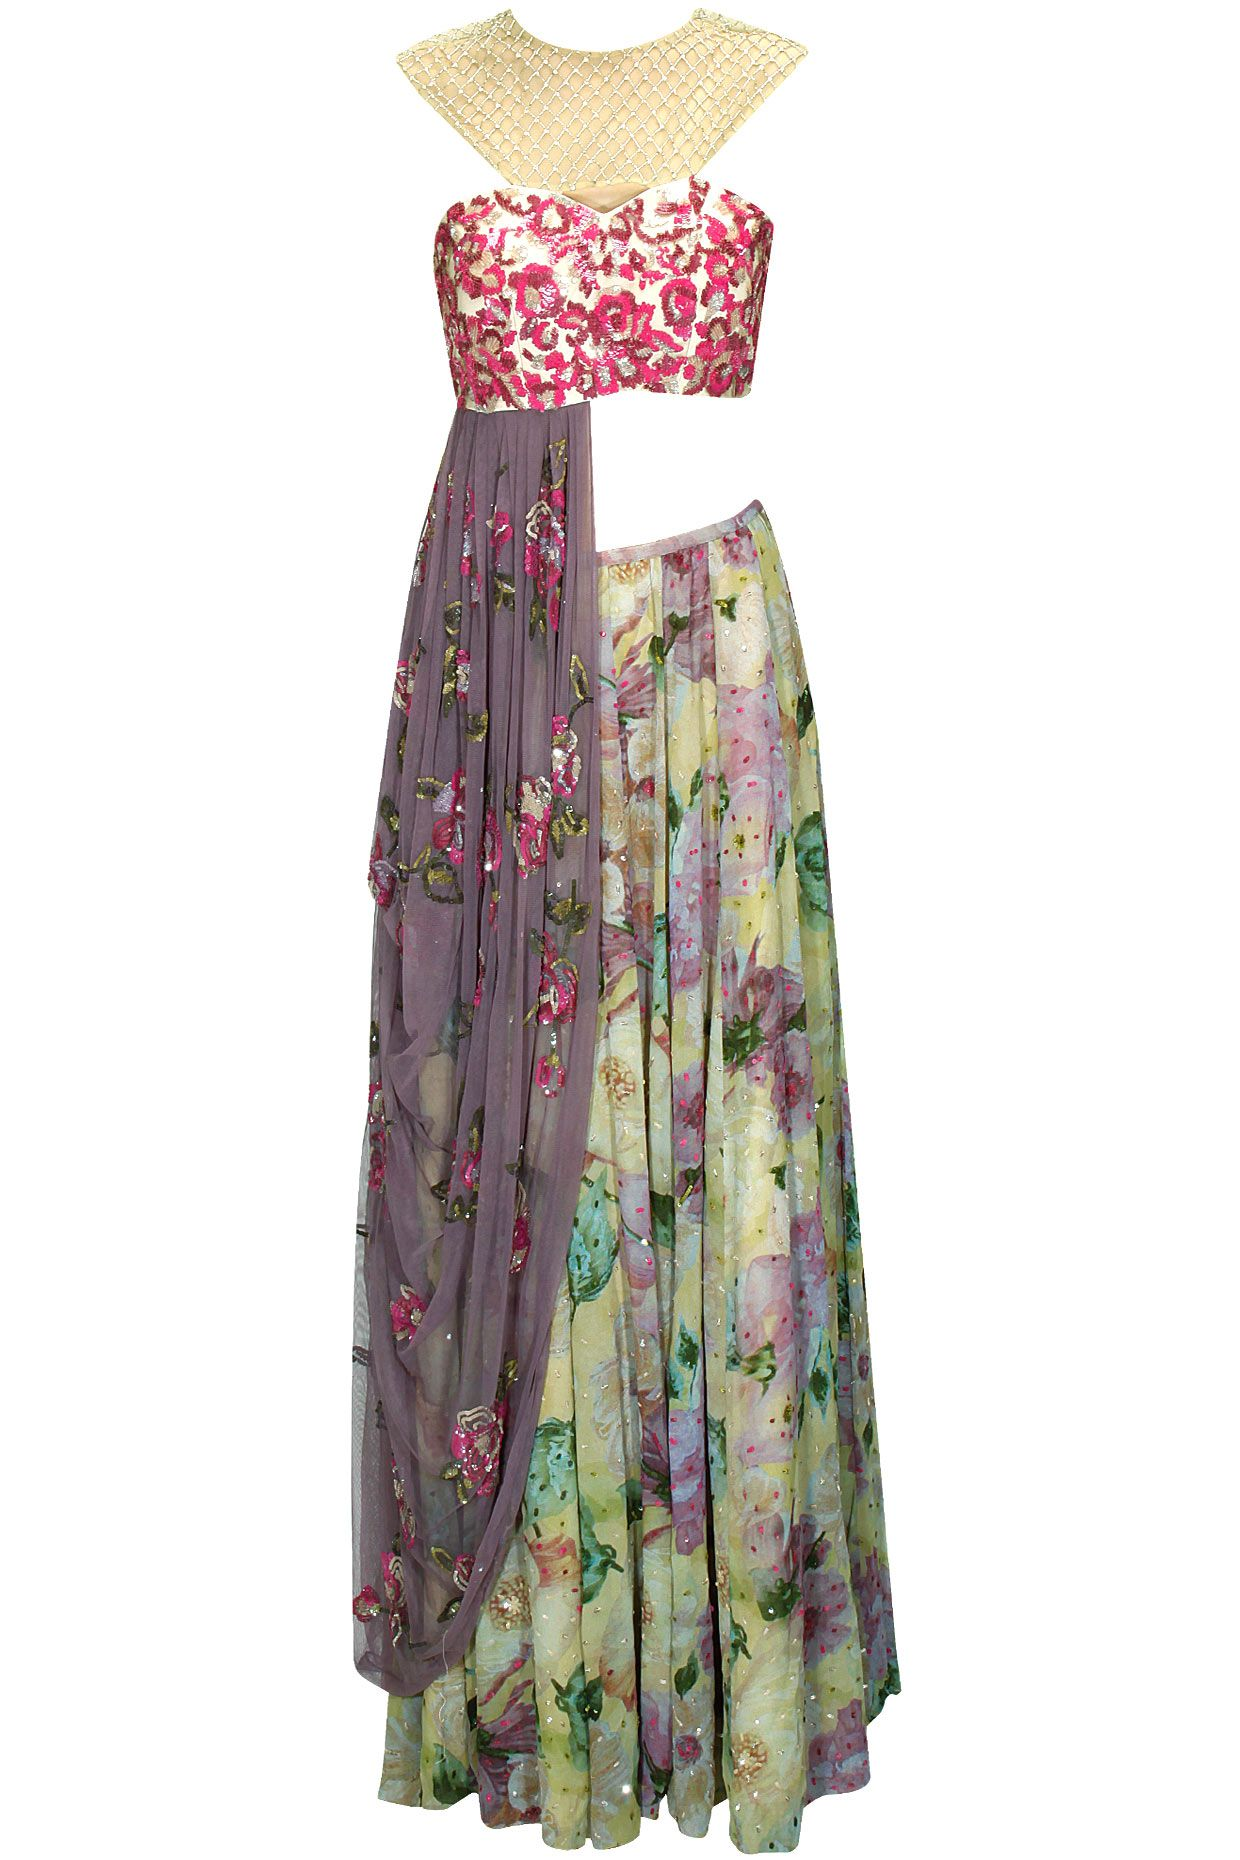 Floral printed embroidered draped lehenga sari with purple embellished blouse available only at Pernia's Pop-Up Shop.